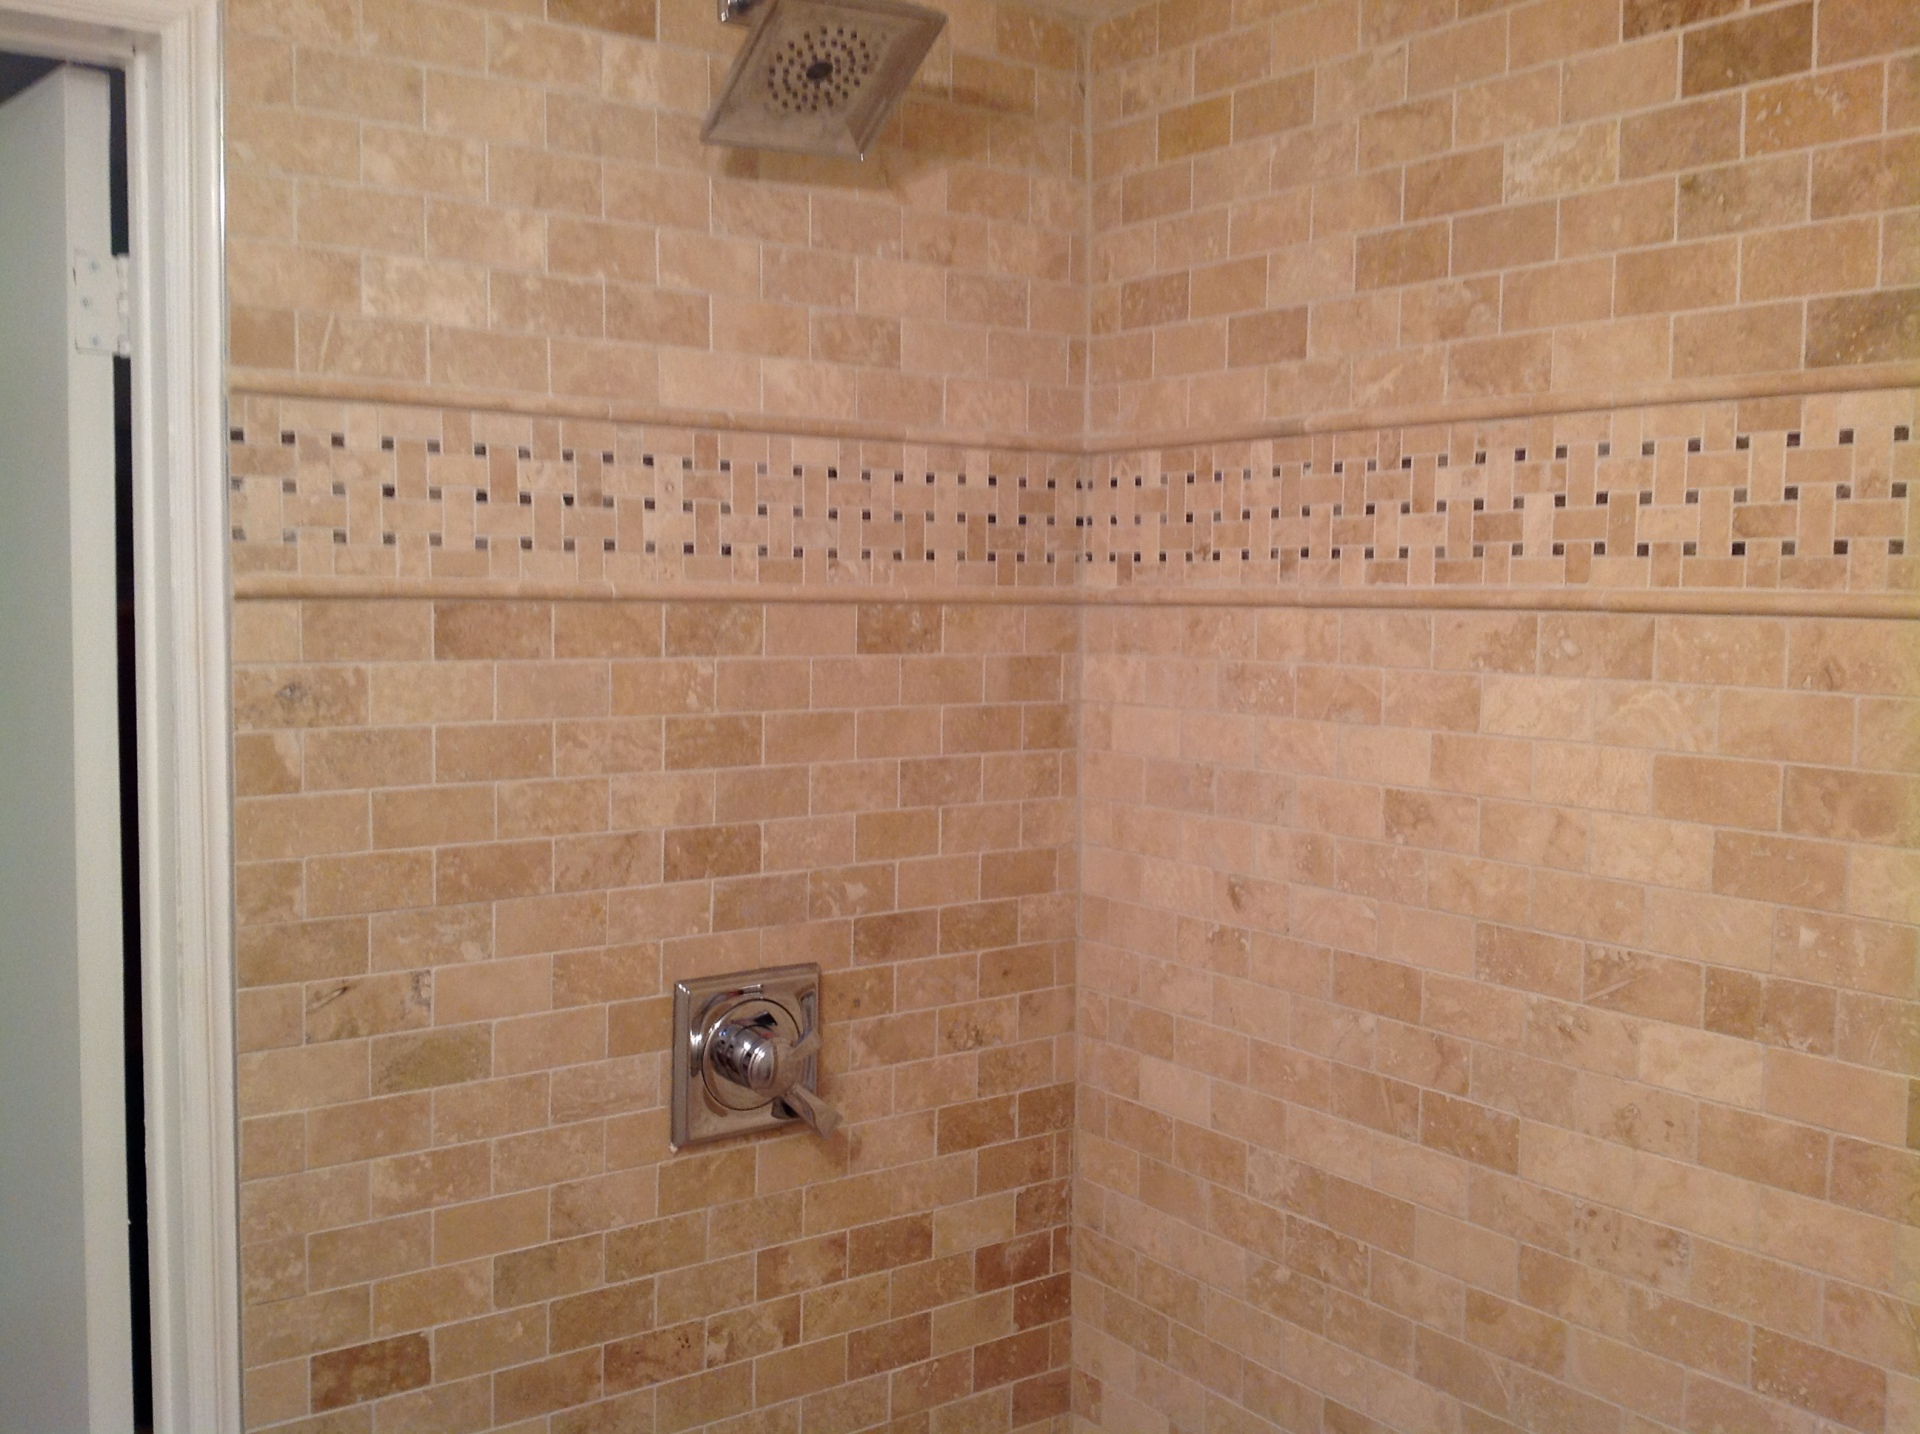 Shower tiled in travertine